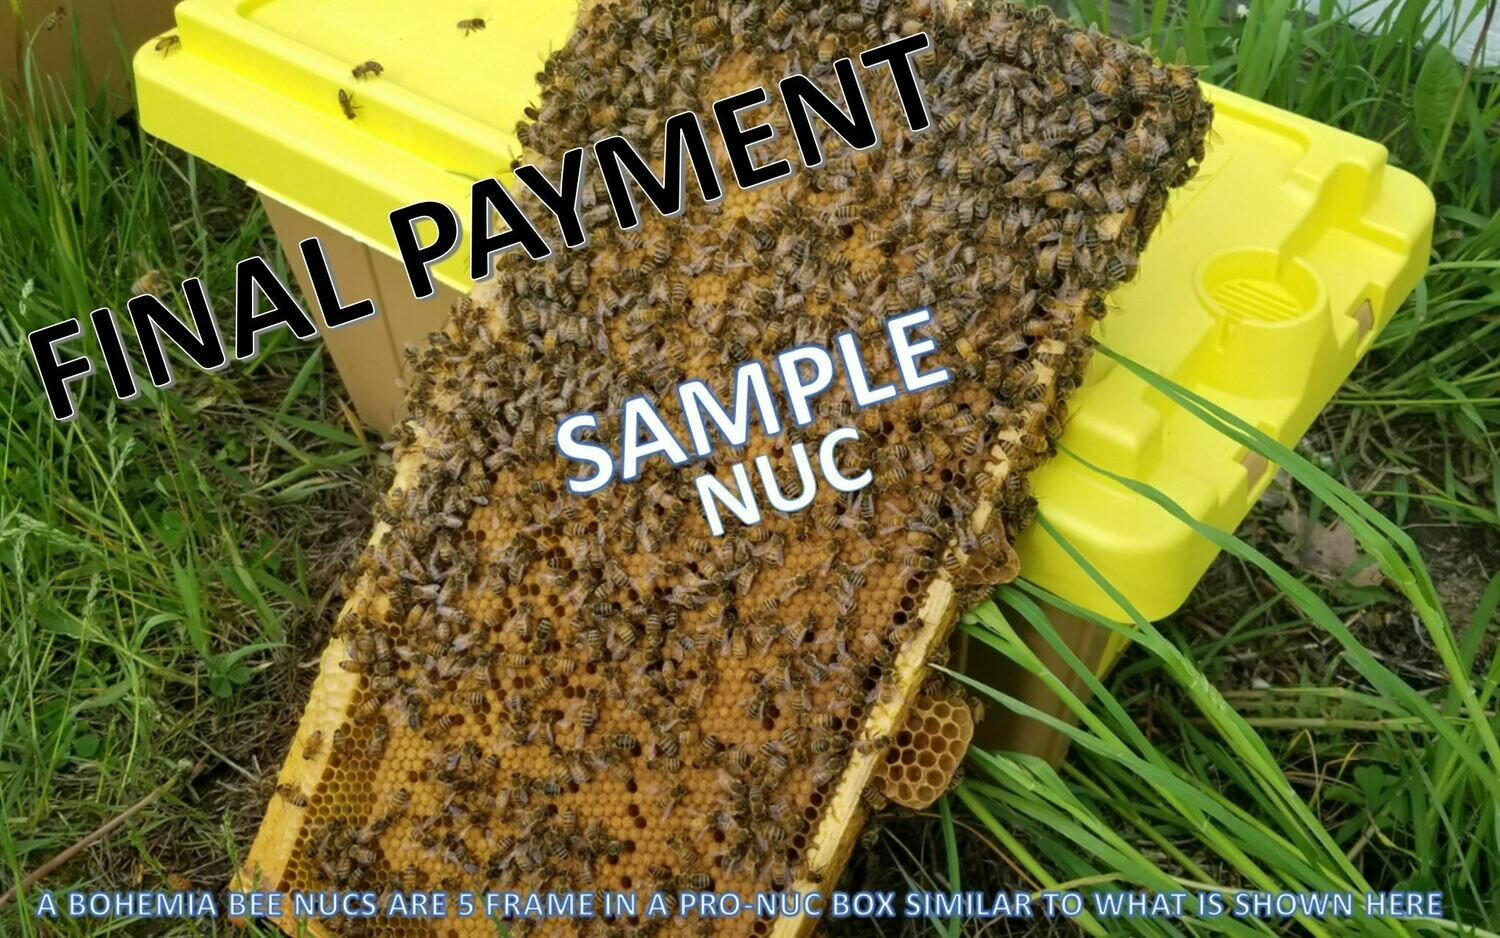 2021 Bohemia Apiary 5 Frame Overwintered Nucleus Colony with 2020 Mated Queen – $200.00 with an EARLY APRIL PICKUP (FINAL INSTALLMENT PAYMENT)